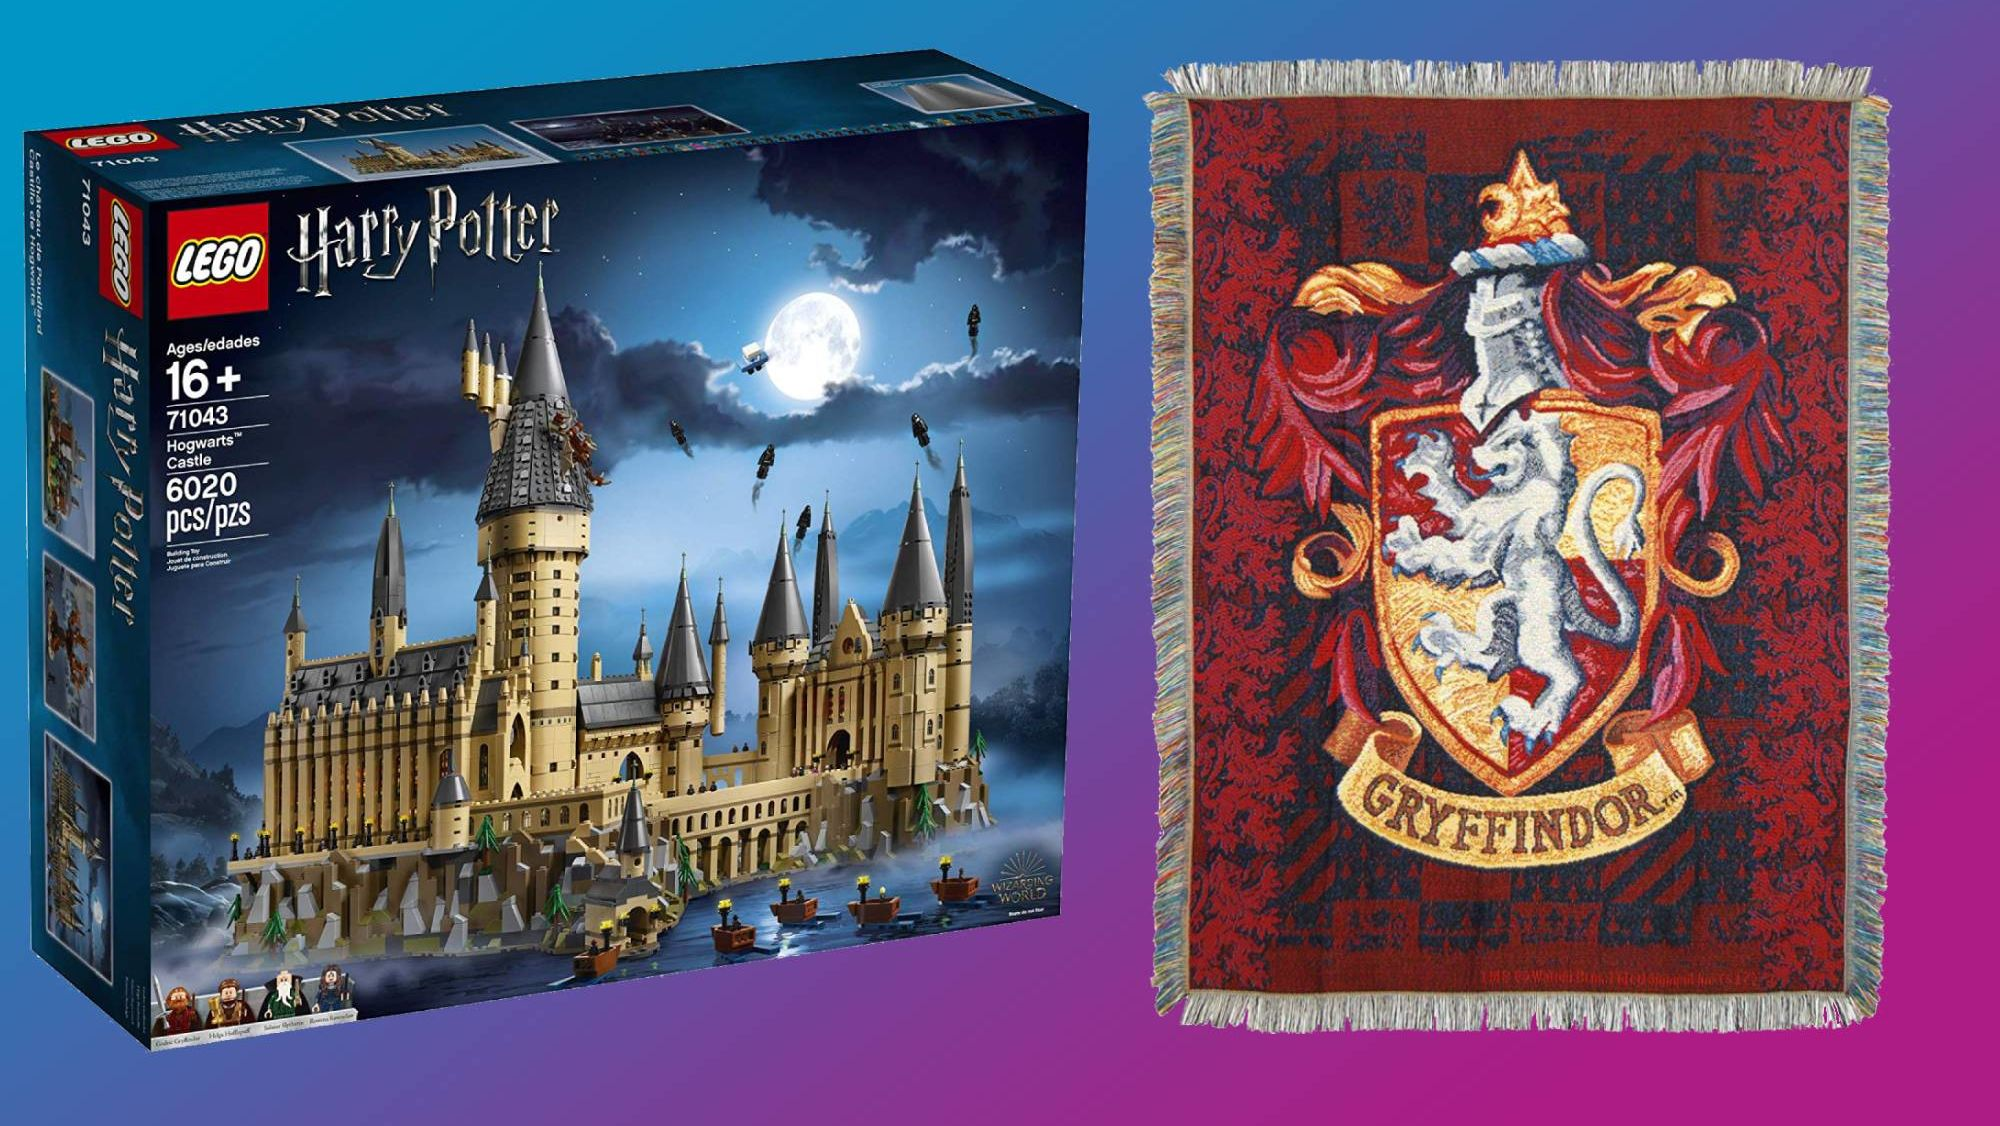 14 Magical Gift Ideas for Harry Potter Fans of All Ages